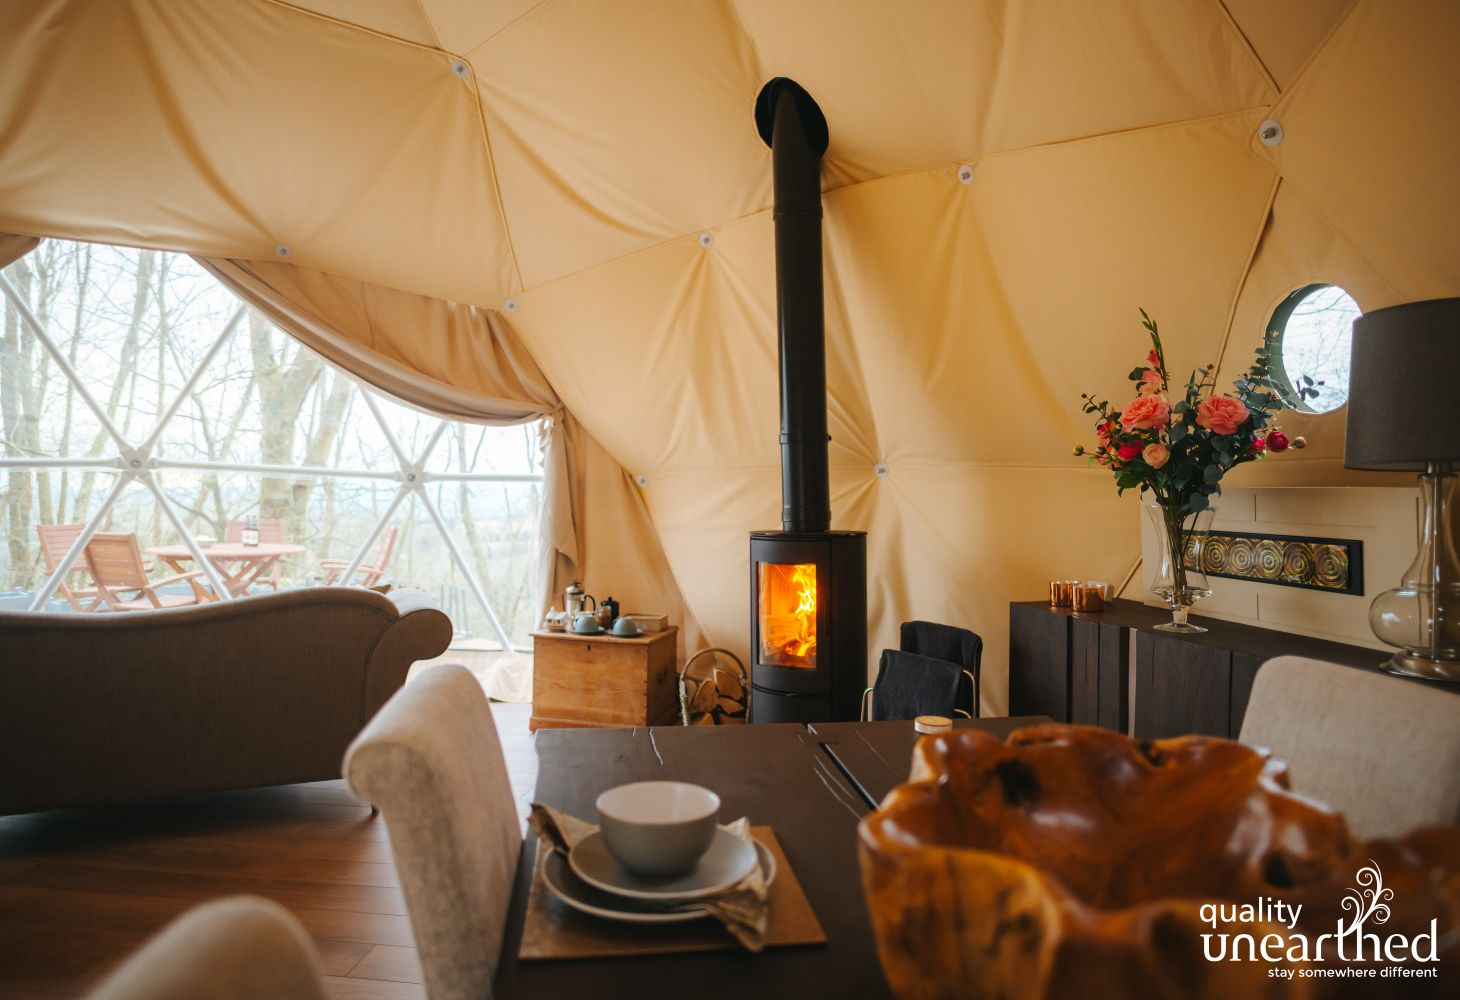 This photo shows the insulated lining of the cosy and romantic glamping geodome